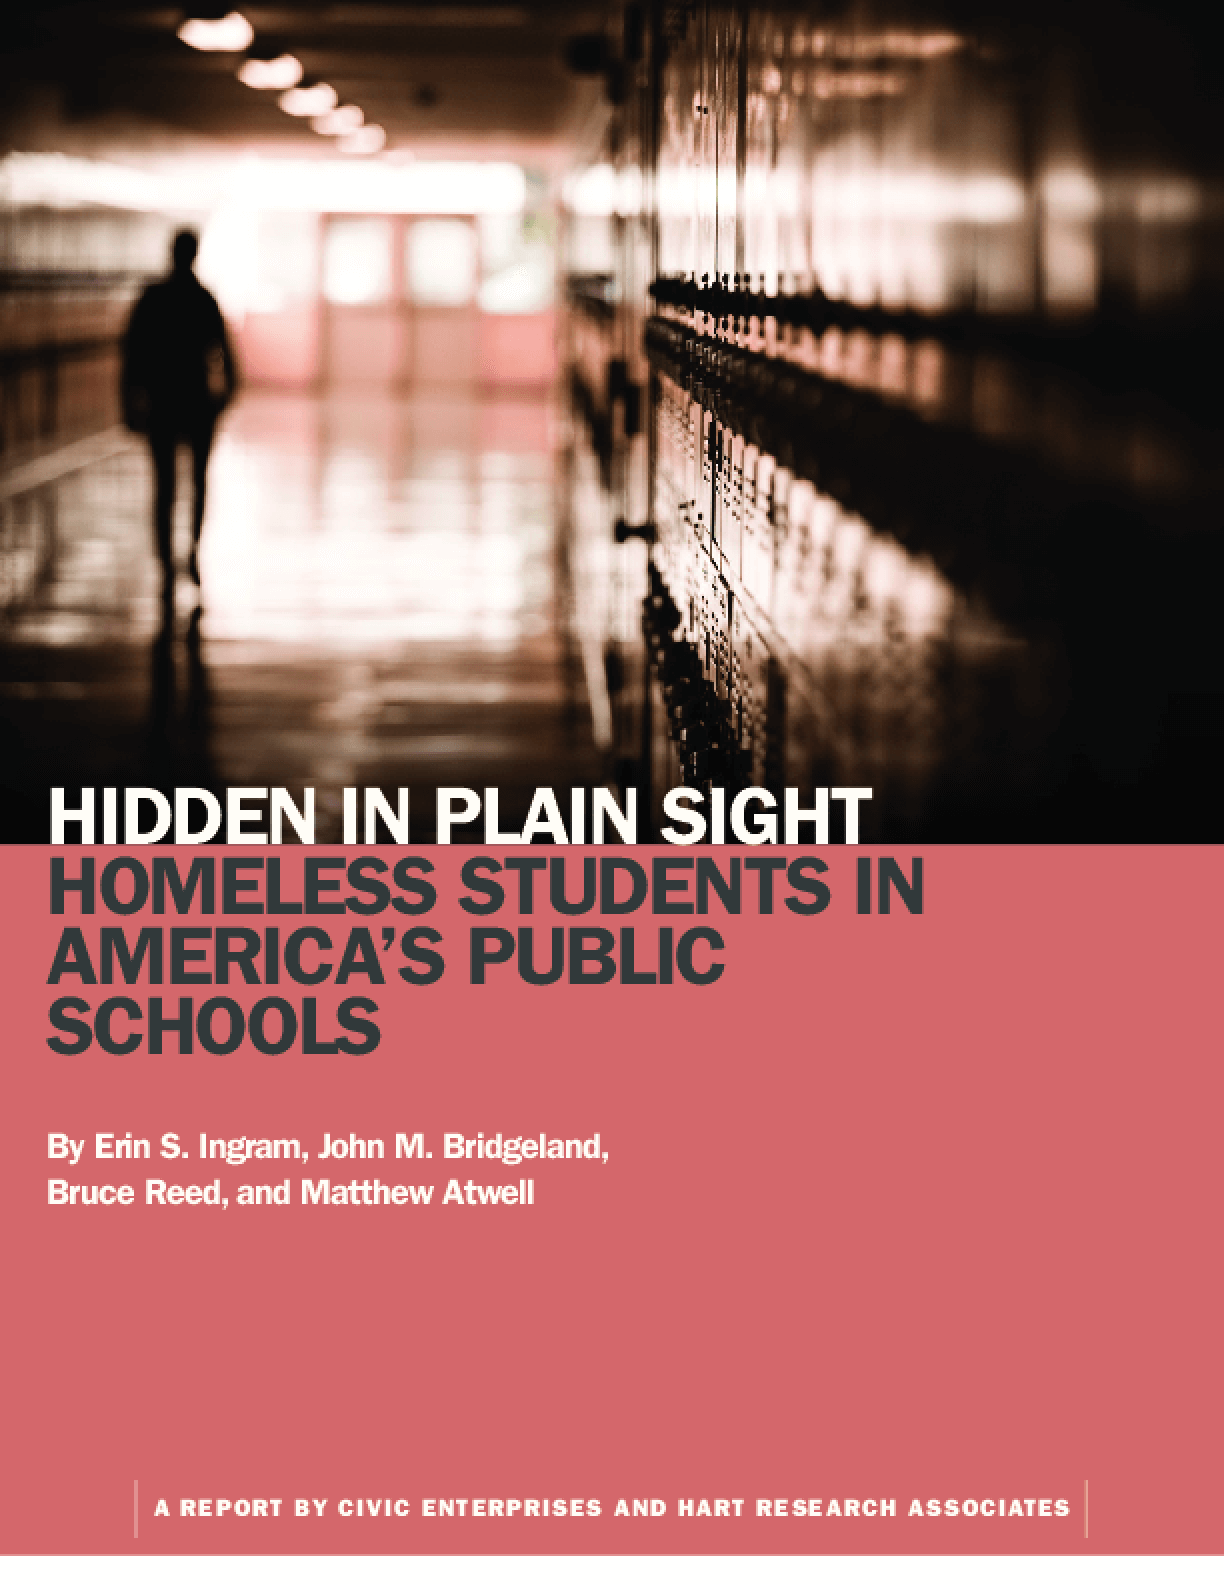 Hidden in Plain Sight: Homeless Students In America's Public Schools